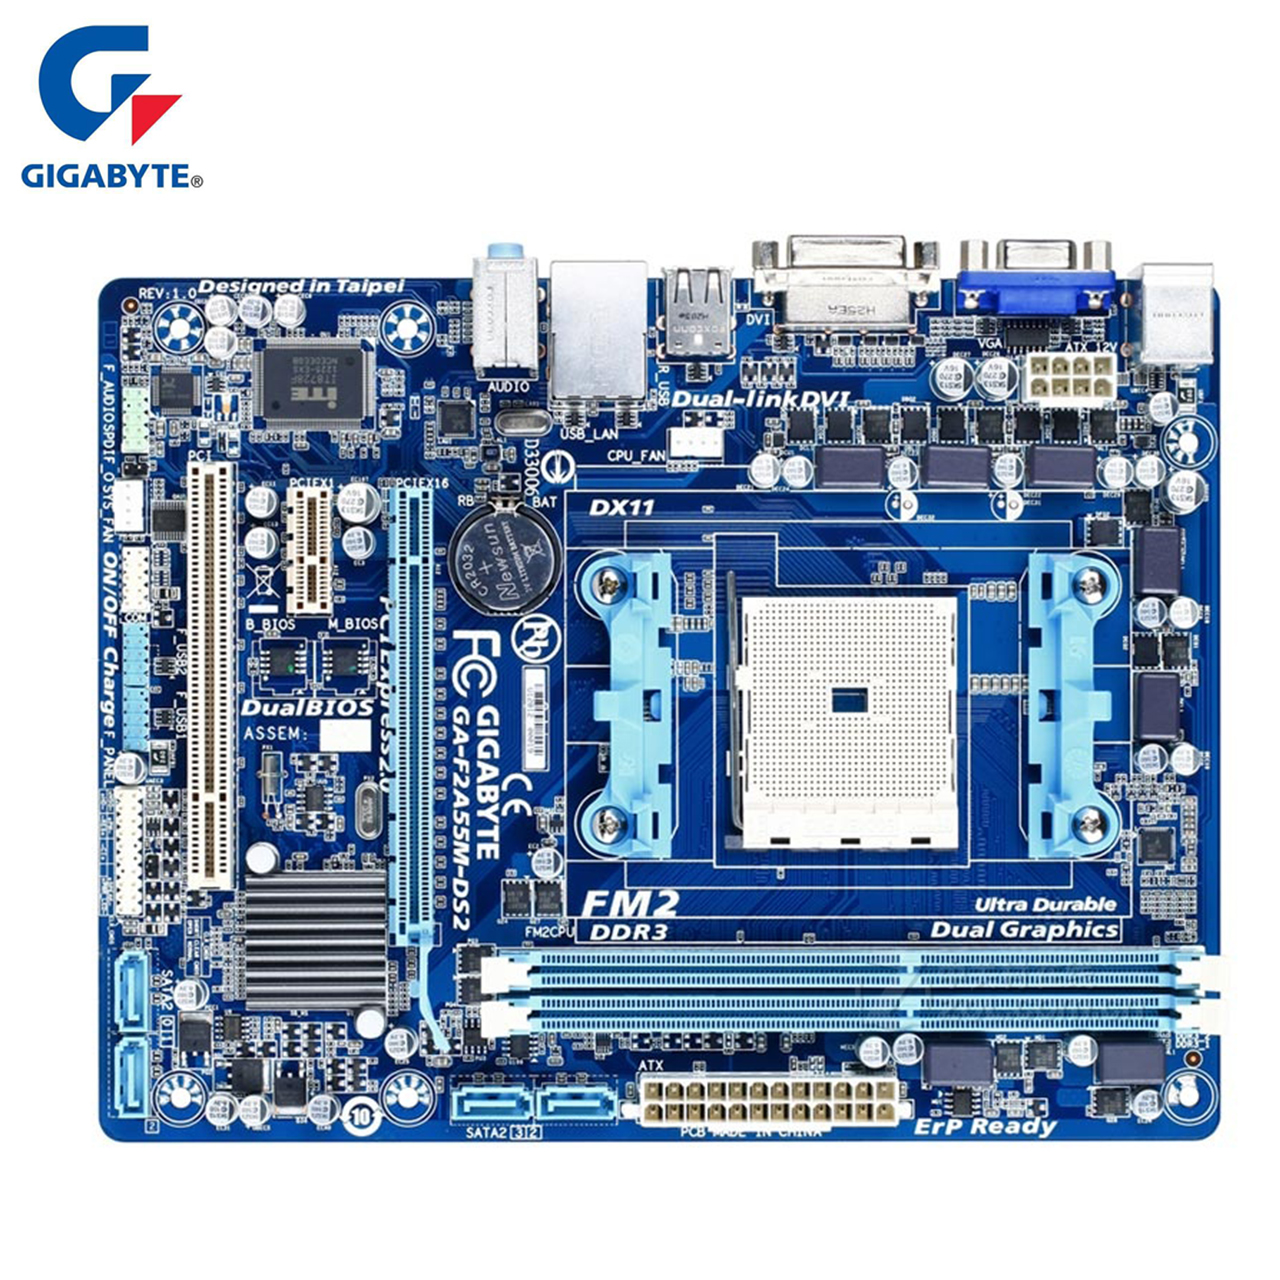 Gigabyte Motherboard GA-F2A55M-DS2 100% Original DDR3 Desktop Mainboard Boards F2A55M-DS2 Socket FM2 A55 64GB Systemboard Boards free shipping original motherboard for asus f1a55 v plus socket fm1 ddr3 boards a55 desktop motherboard